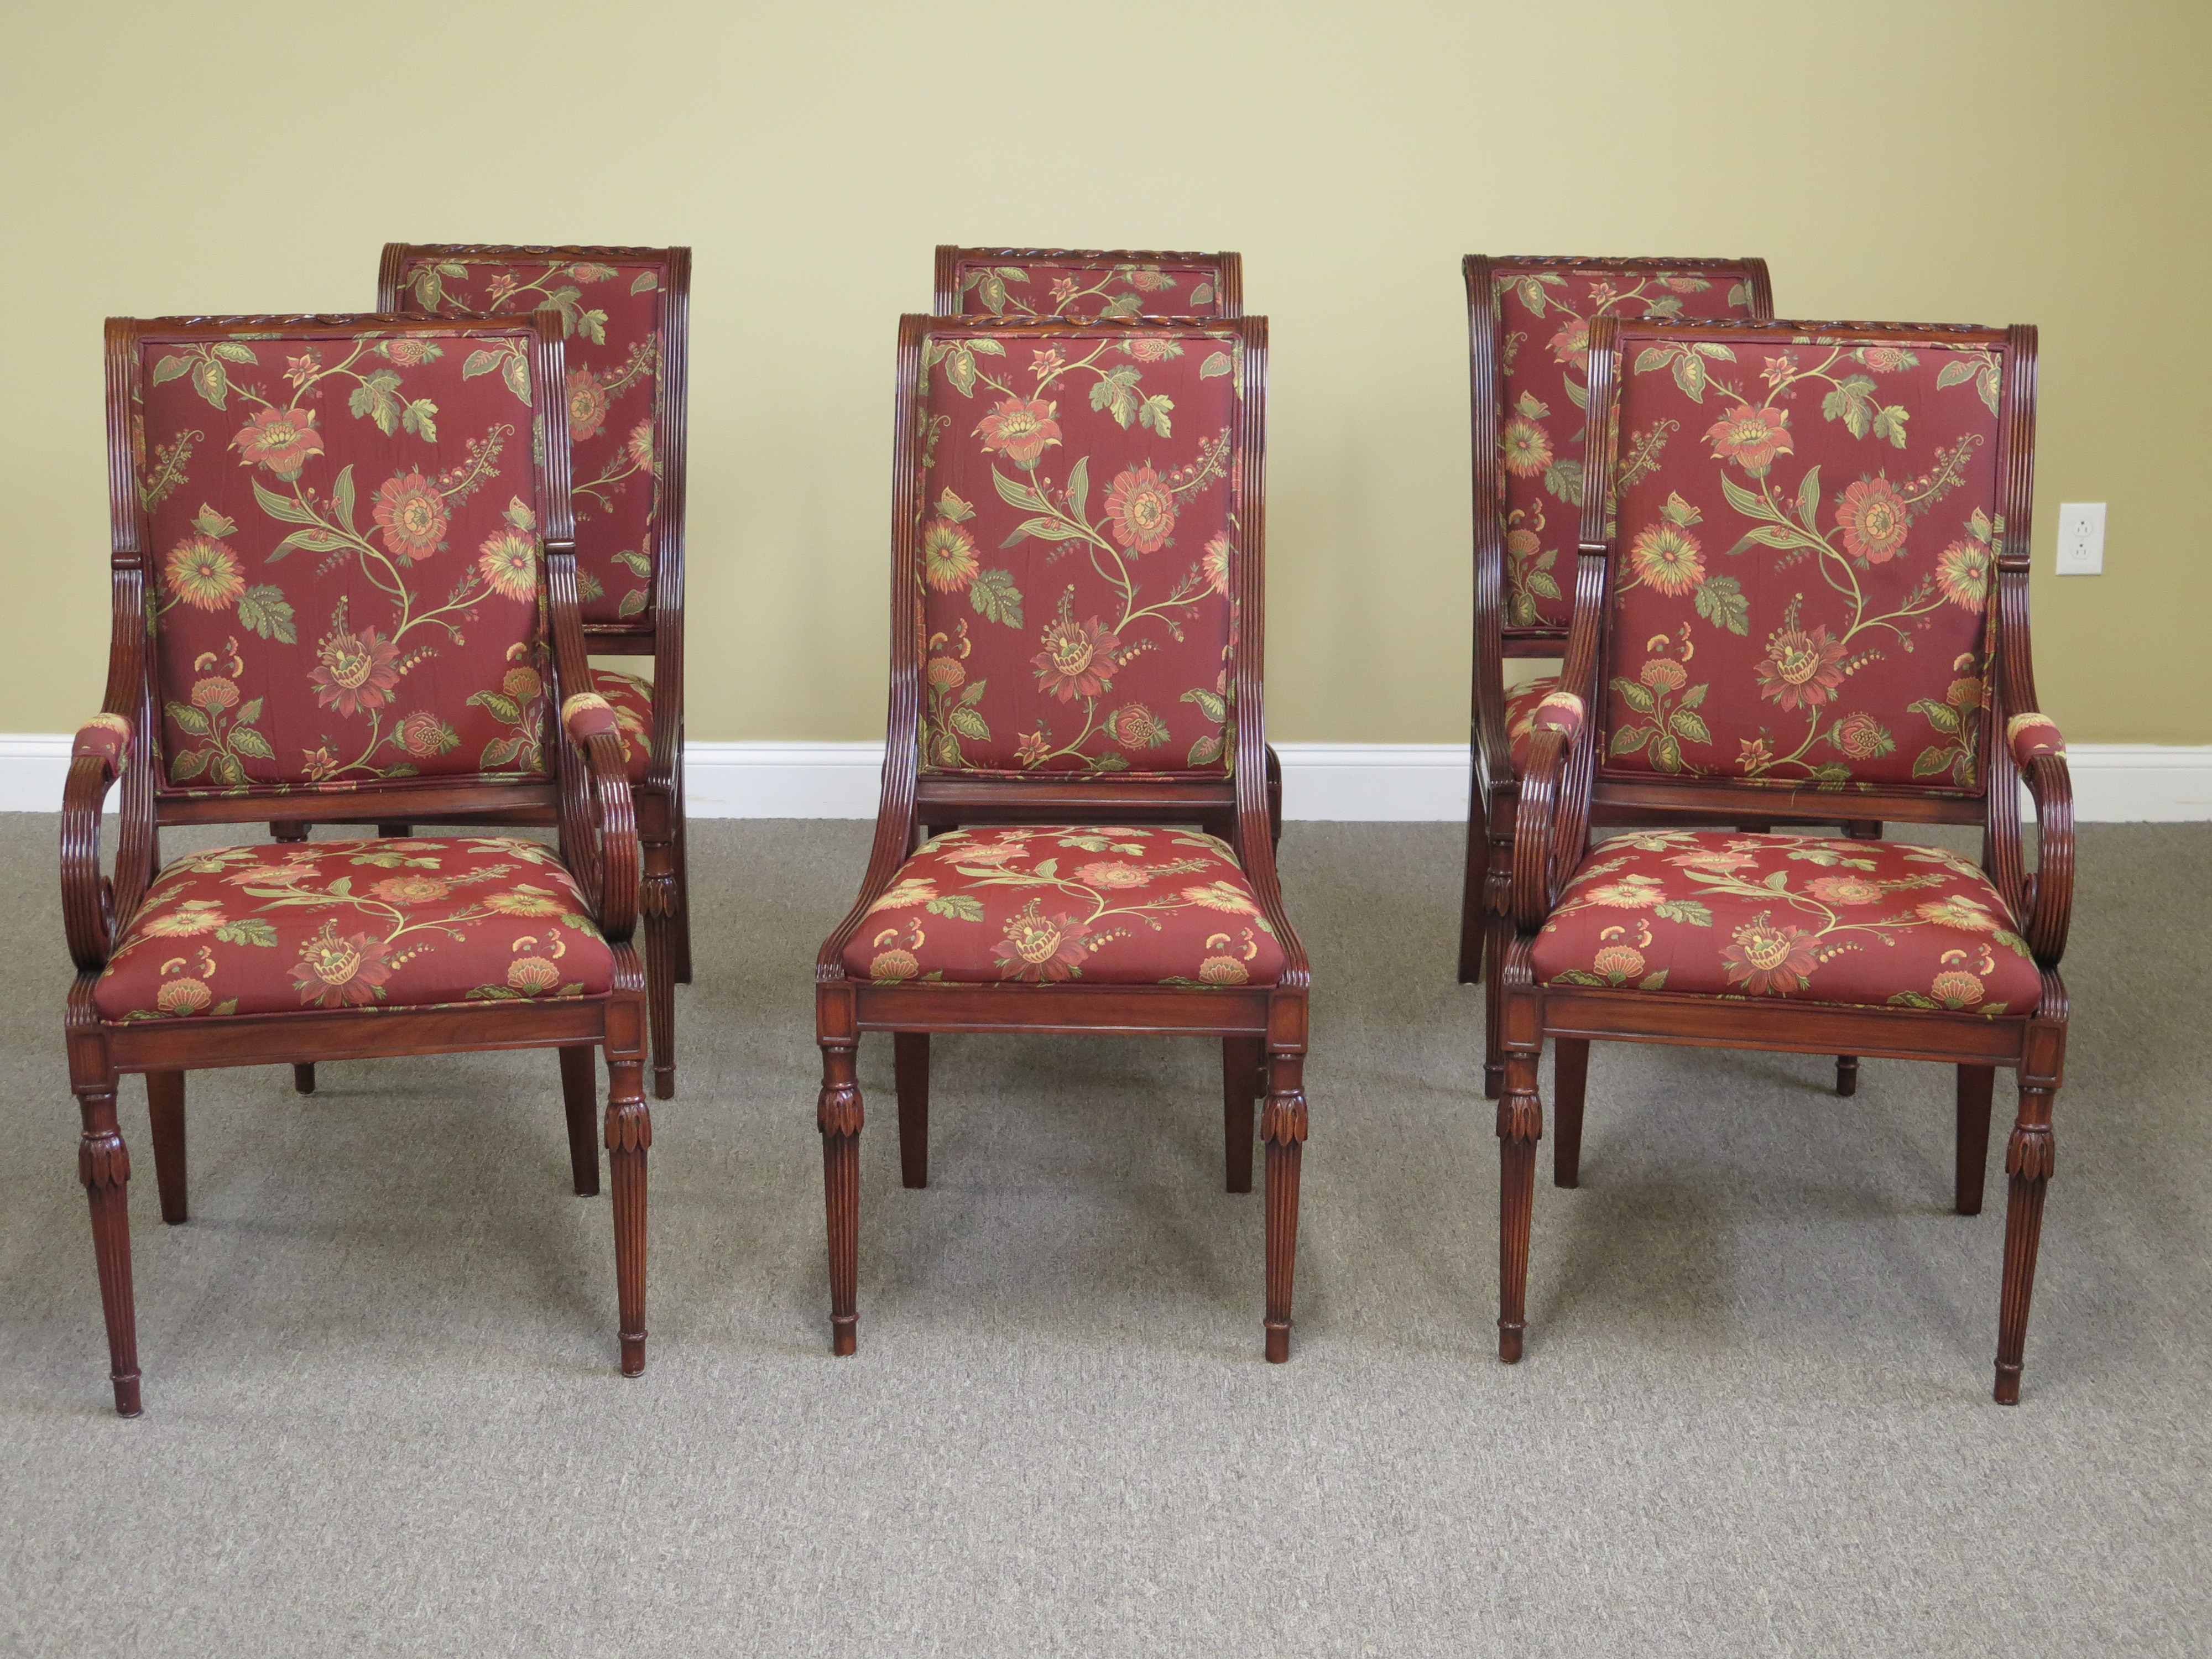 Karges Regency Style Dining Room Chairs Set of 6 Chairish